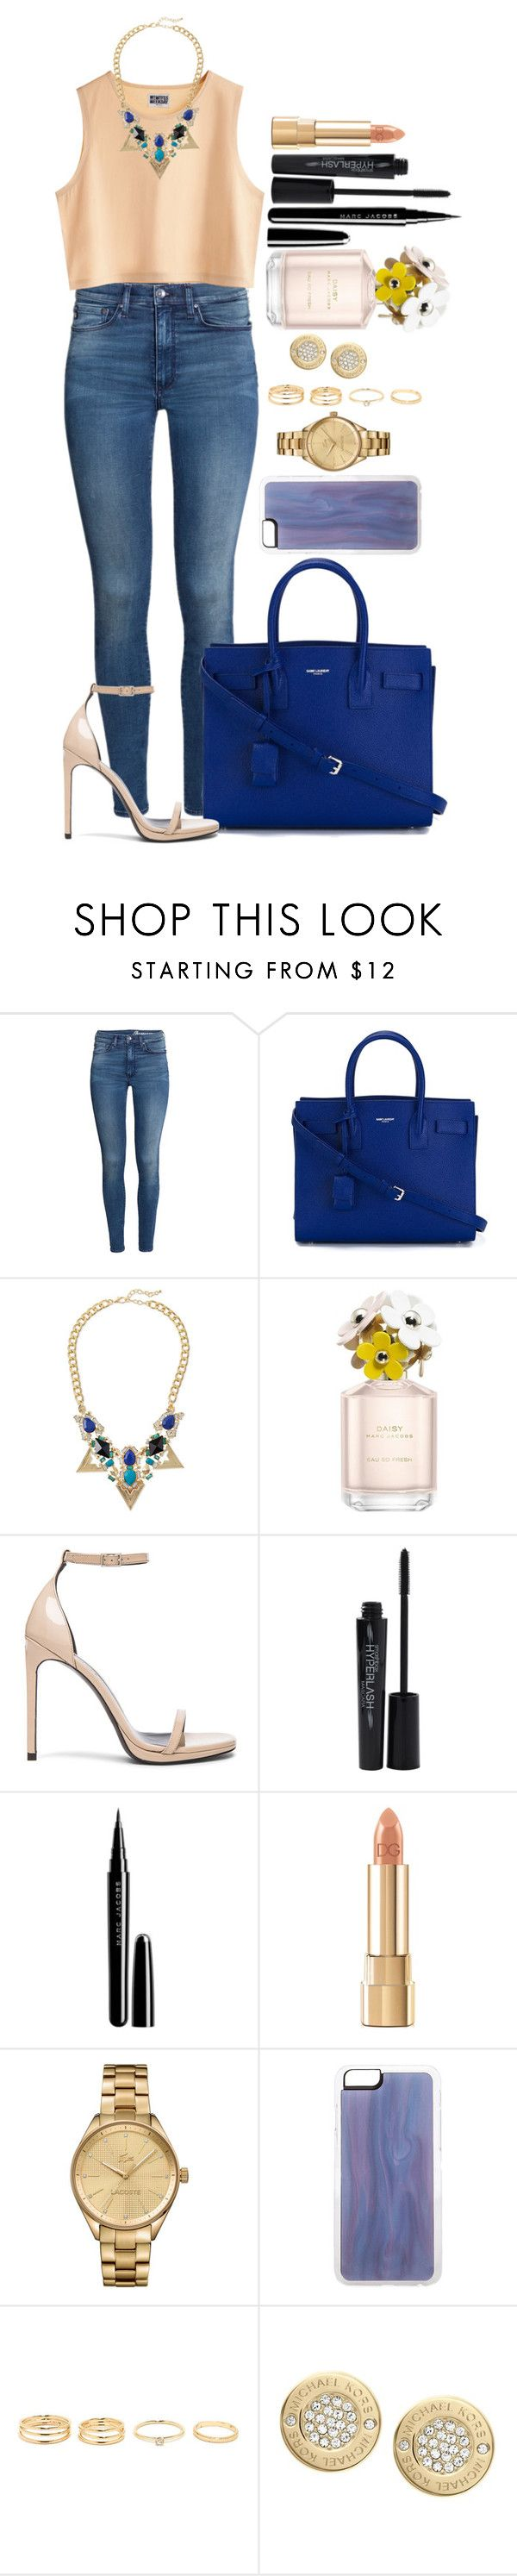 """""""Untitled #1364"""" by fabianarveloc on Polyvore featuring H&M, Yves Saint Laurent, MTWTFSS Weekday, Jules Smith, Marc Jacobs, Smashbox, Dolce&Gabbana, Lacoste, Zero Gravity and Michael Kors"""